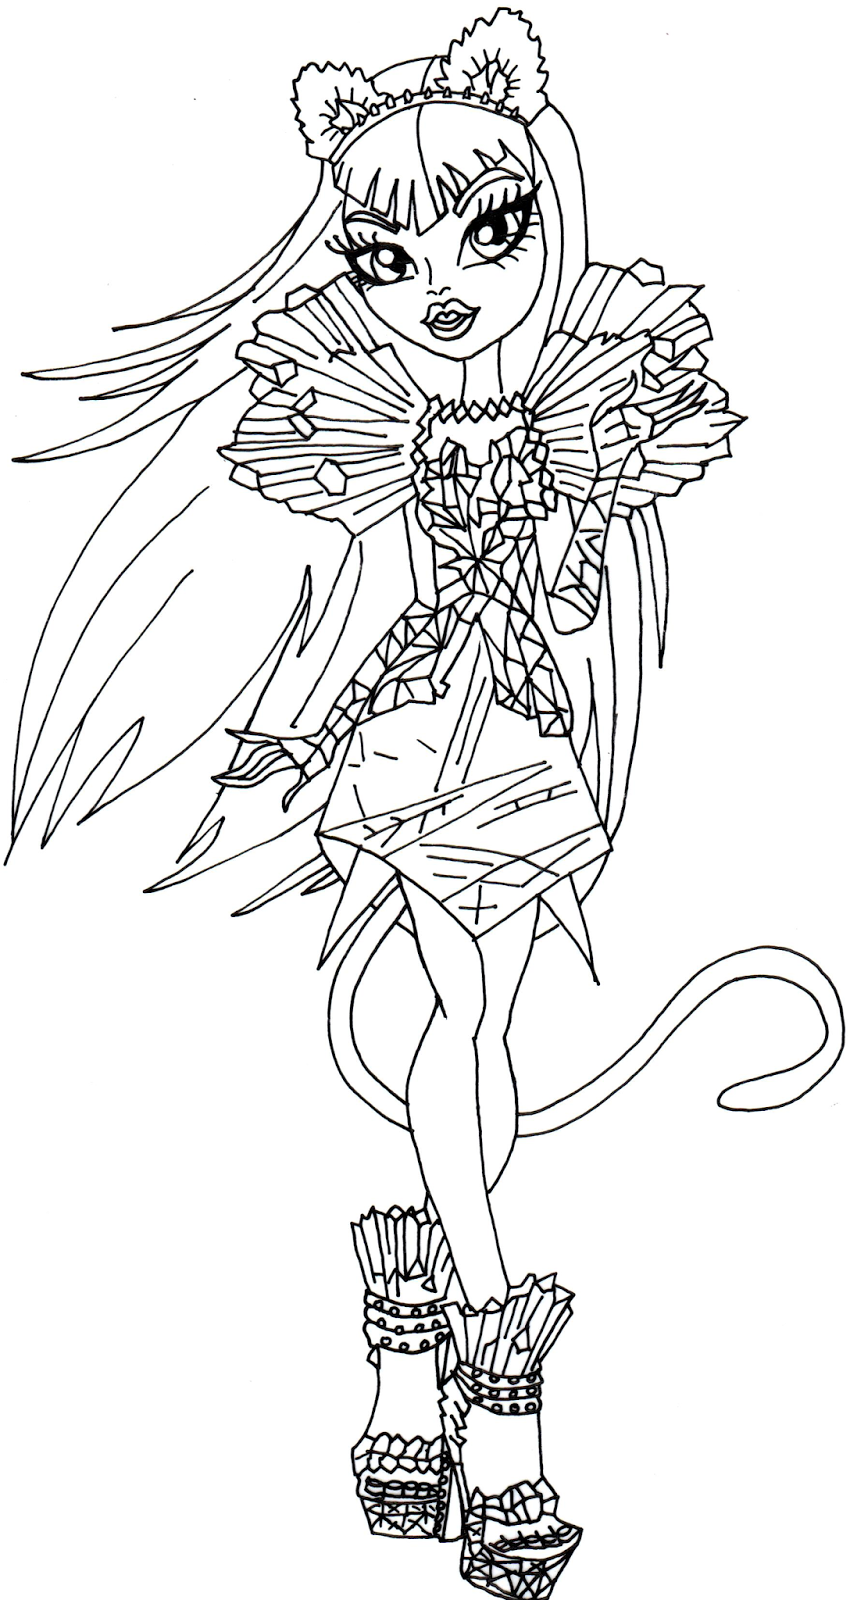 Free printable monster high coloring pages catty noir boo for Monster high color pages free